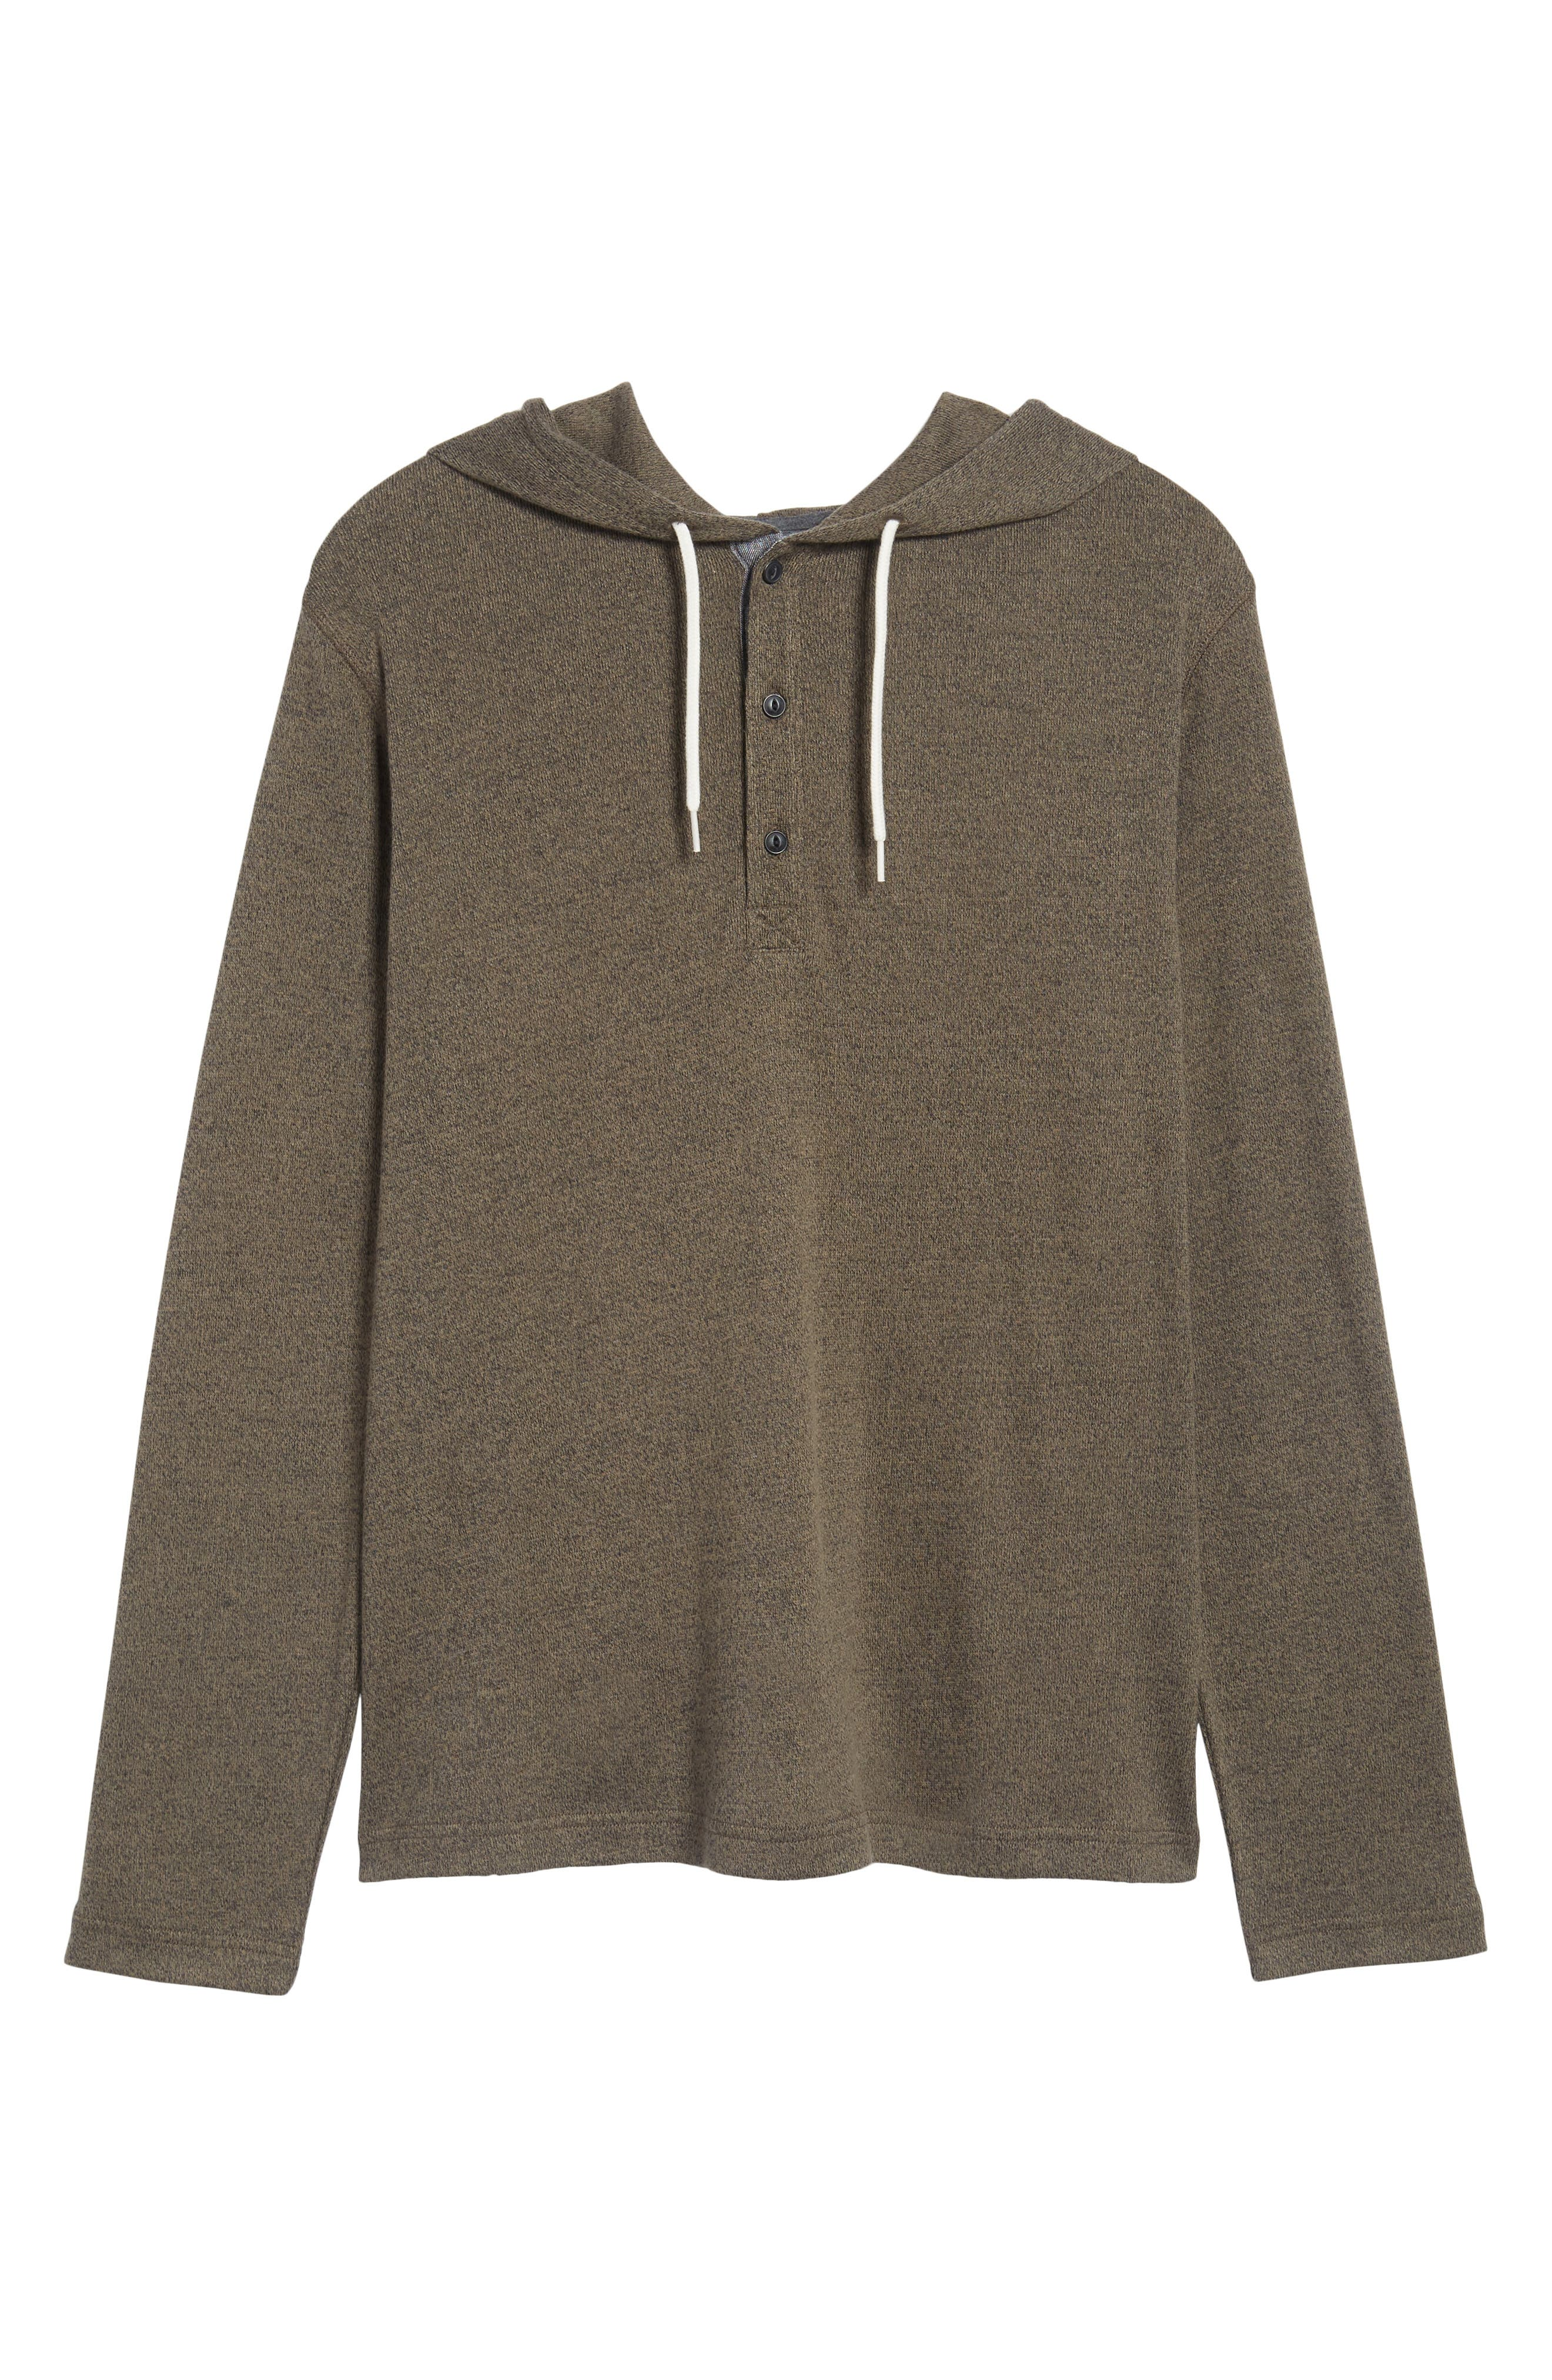 Knit Hooded Pullover,                             Alternate thumbnail 6, color,                             Olive Tarmac Heather